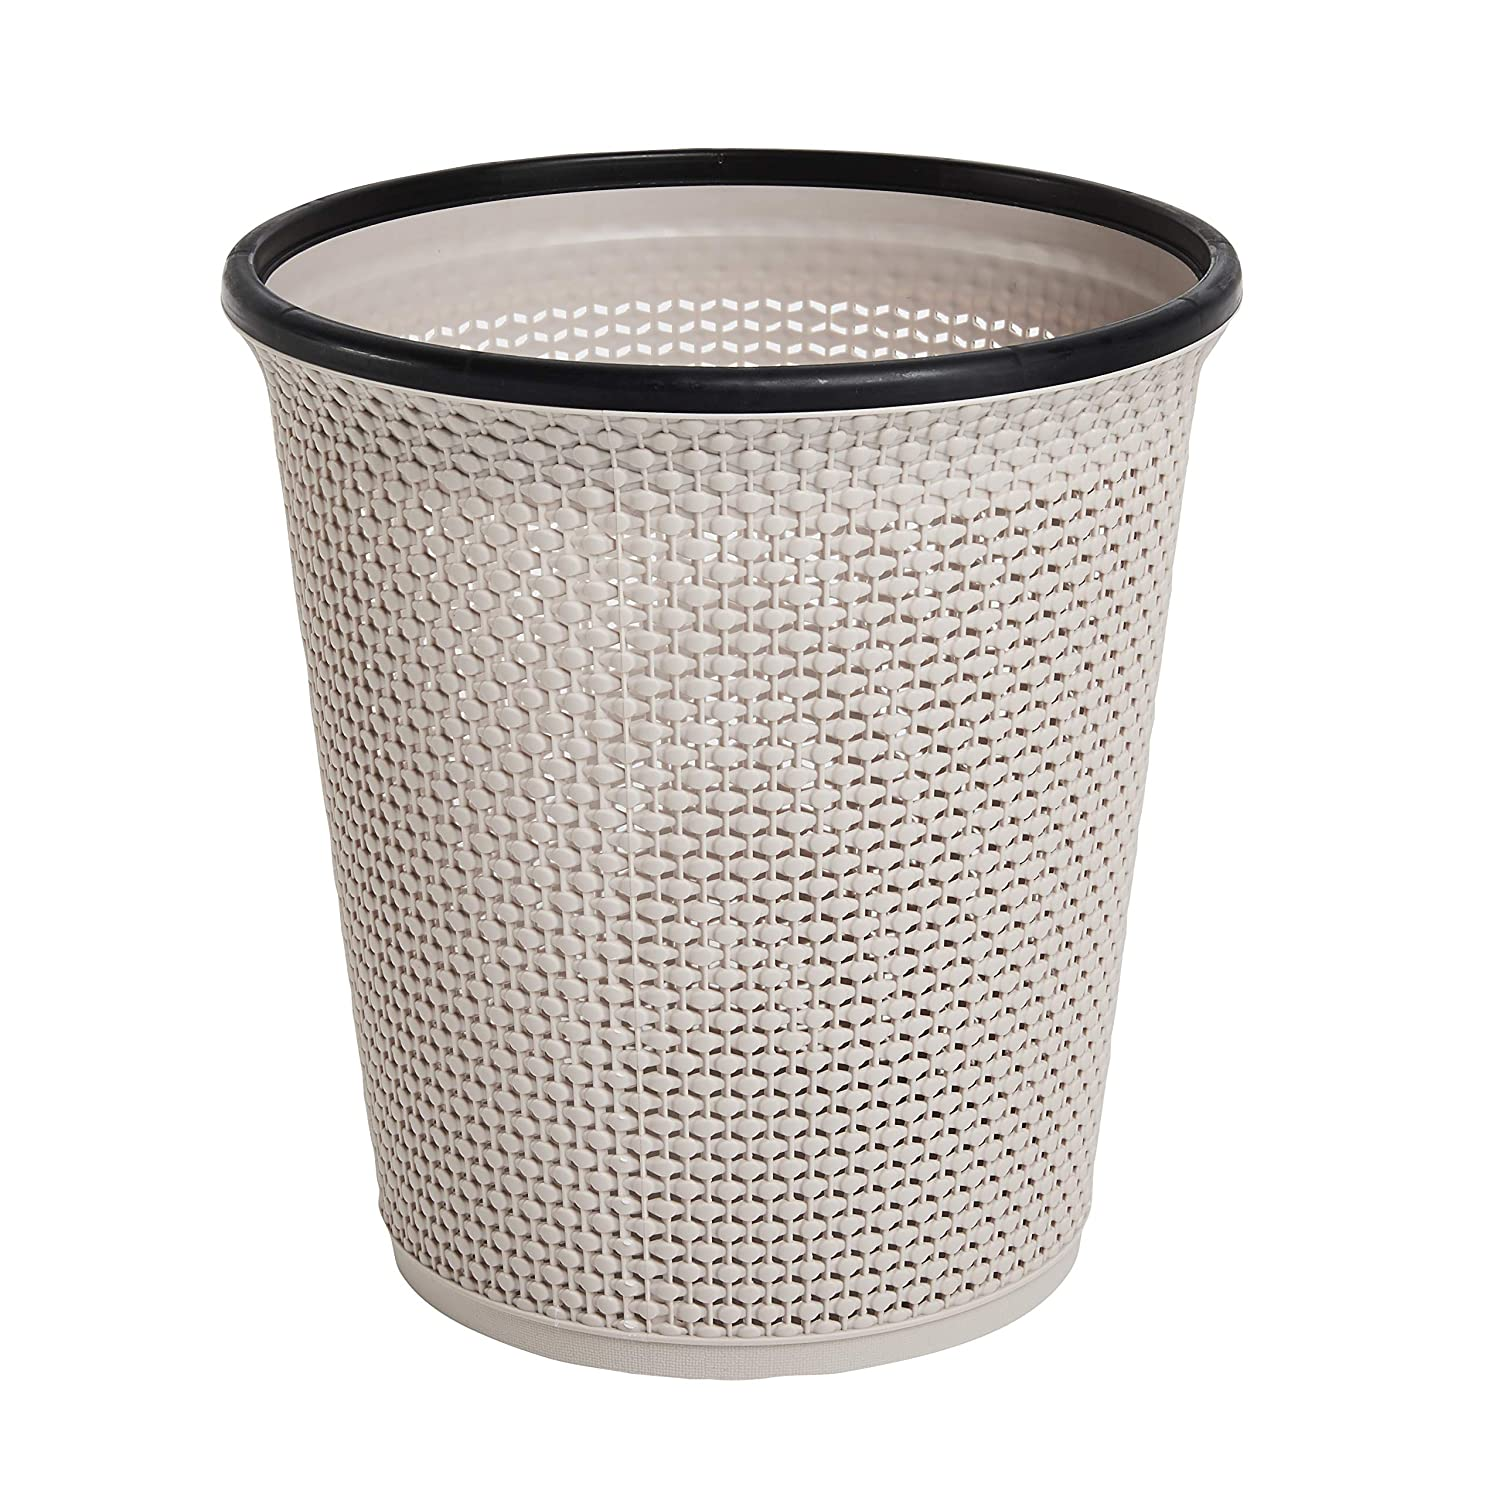 Zuvo Waste Paper Basket and Bin and Trash Bin in Plastic - Rattan Style with a Contemporary Look. Waste Bin for Kitchen, Home or Office 11.5 Inch Tall (Beige)